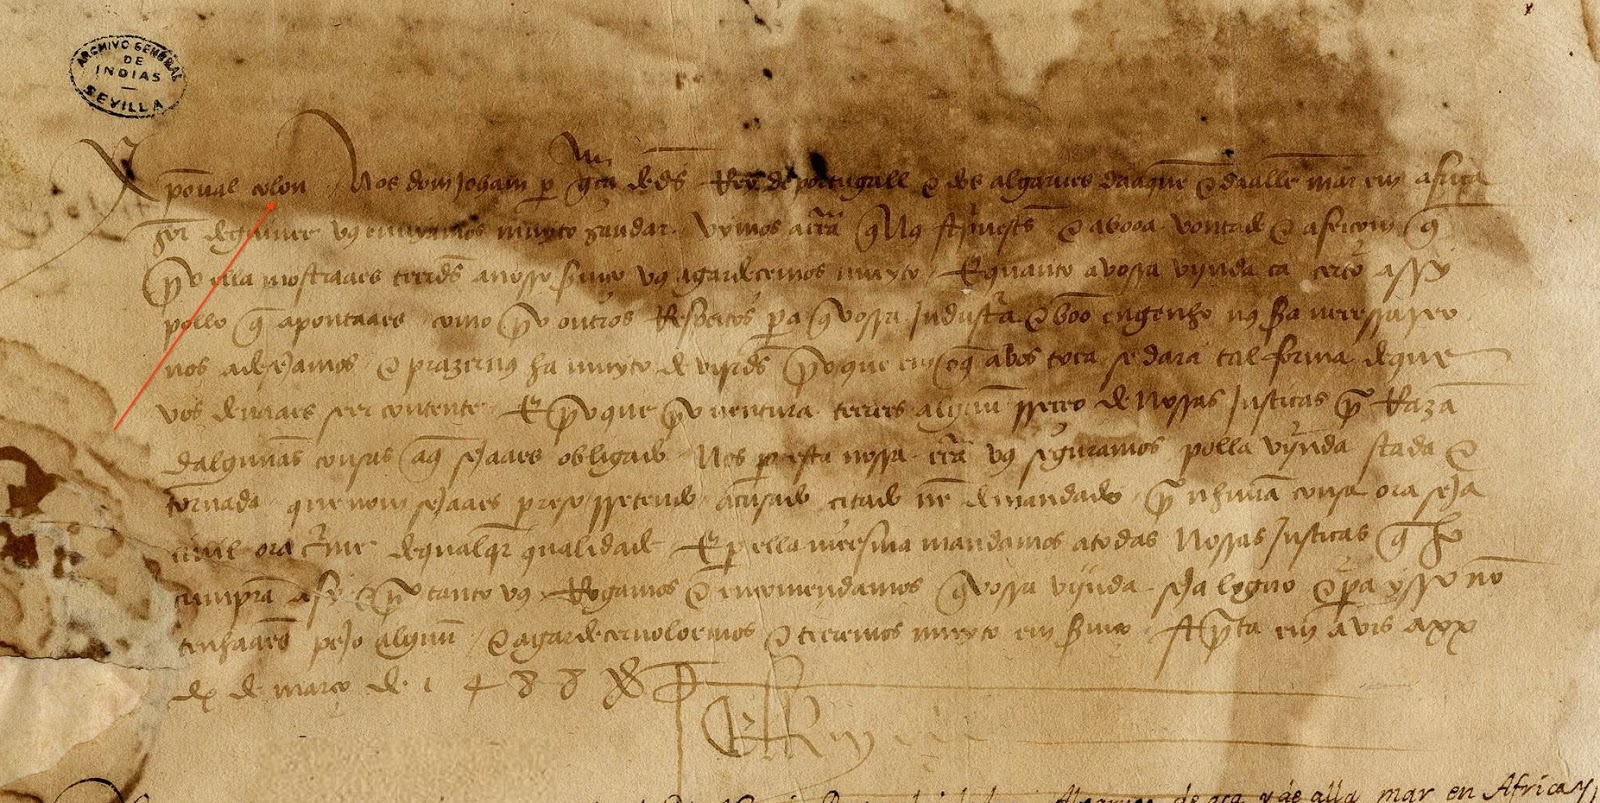 a review of christopher columbus letter Columbus's letter on the first voyage is the first known document announcing the results of the  in his letter, christopher columbus claims to have discovered and taken  in his summary of the on-board journal, columbus's son, ferdinand.